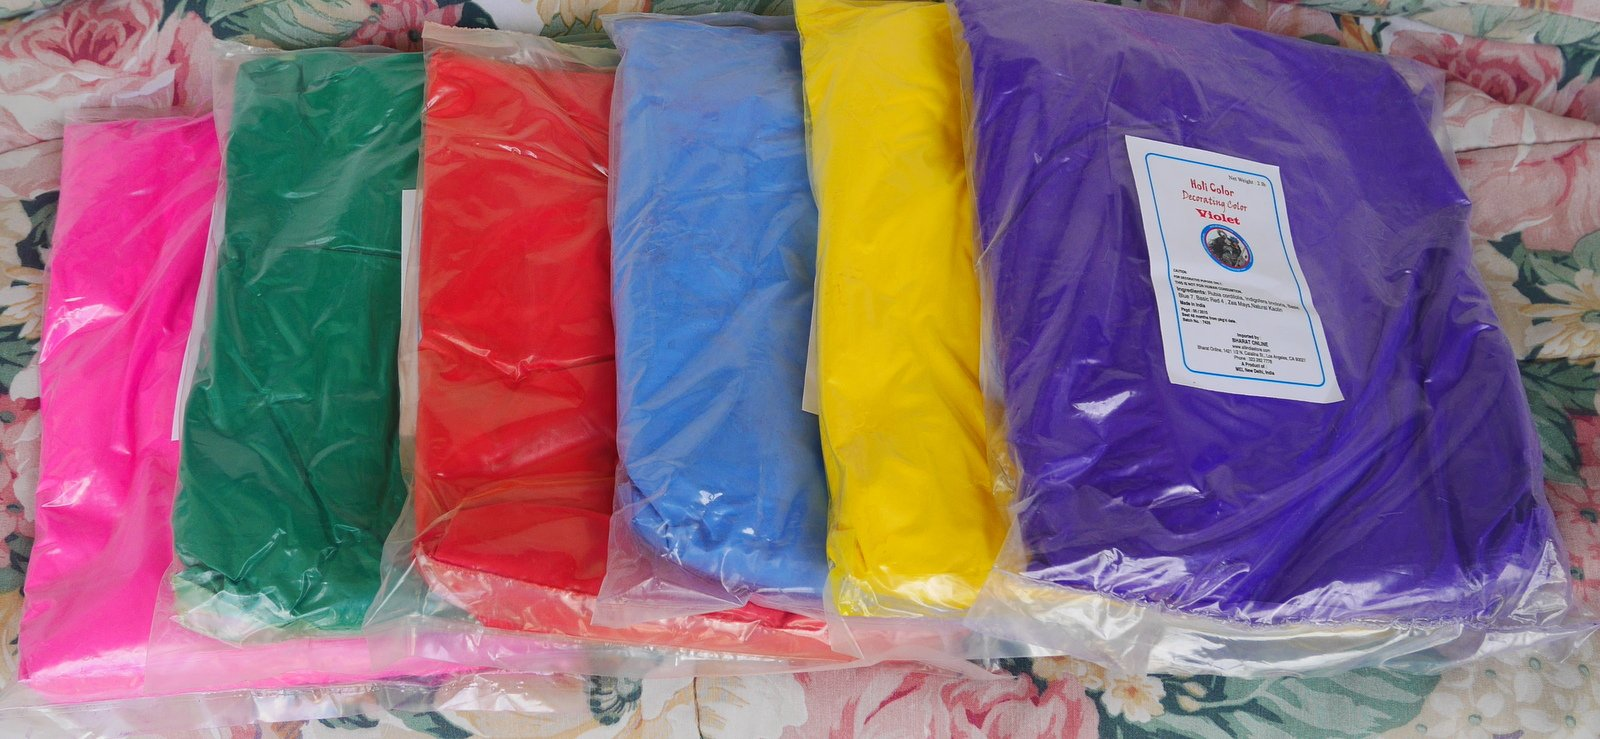 Gulaal Colors - holi colors - color powders - 12 Lbs 6 colors BHARAT ONLINE BRAND, SELLS ONLY FROM THIS STORE (2lbs ea color) RED OR ORANGE, PINK, LIGHT BLUE, GREEN, YELLOW, AND PURPLE - SHIPS FROM LOS ANGELES 3 TO 6 DAYS DELIVERY by Bharat Online